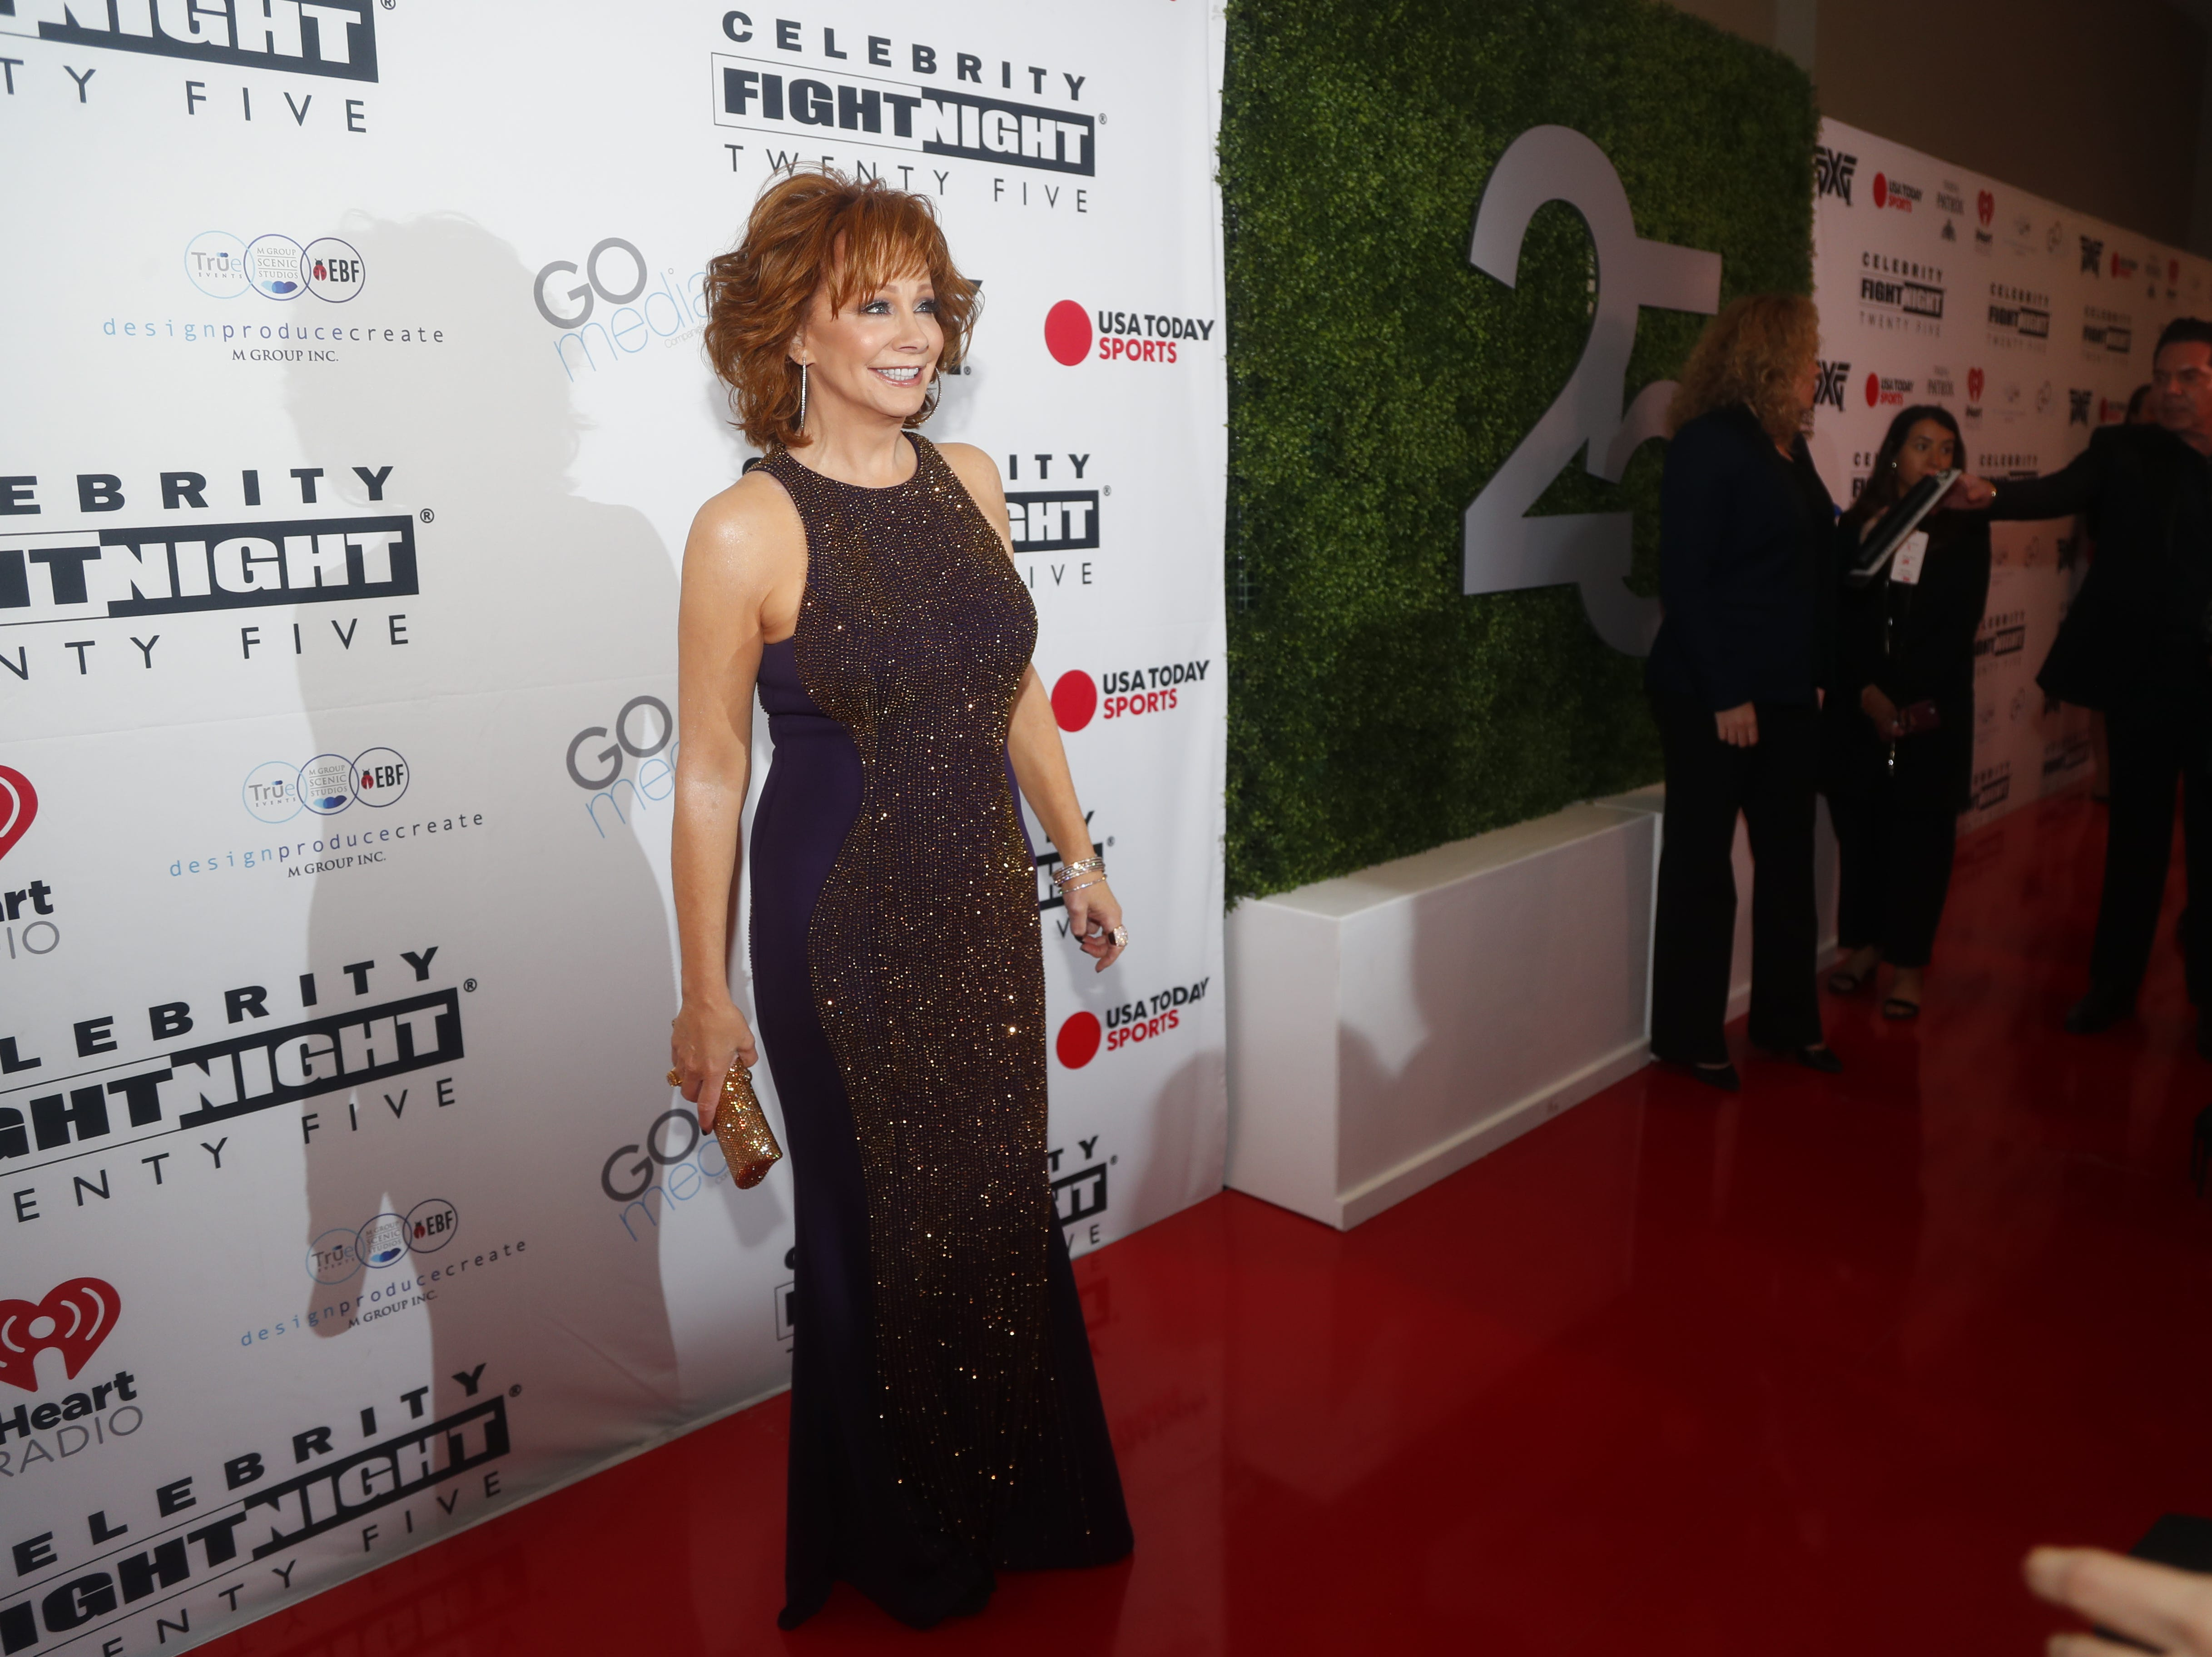 Reba McEntire poses for pictures during the Celebrity Fight Night red carpet in Scottsdale, Ariz., on March 23, 2019.